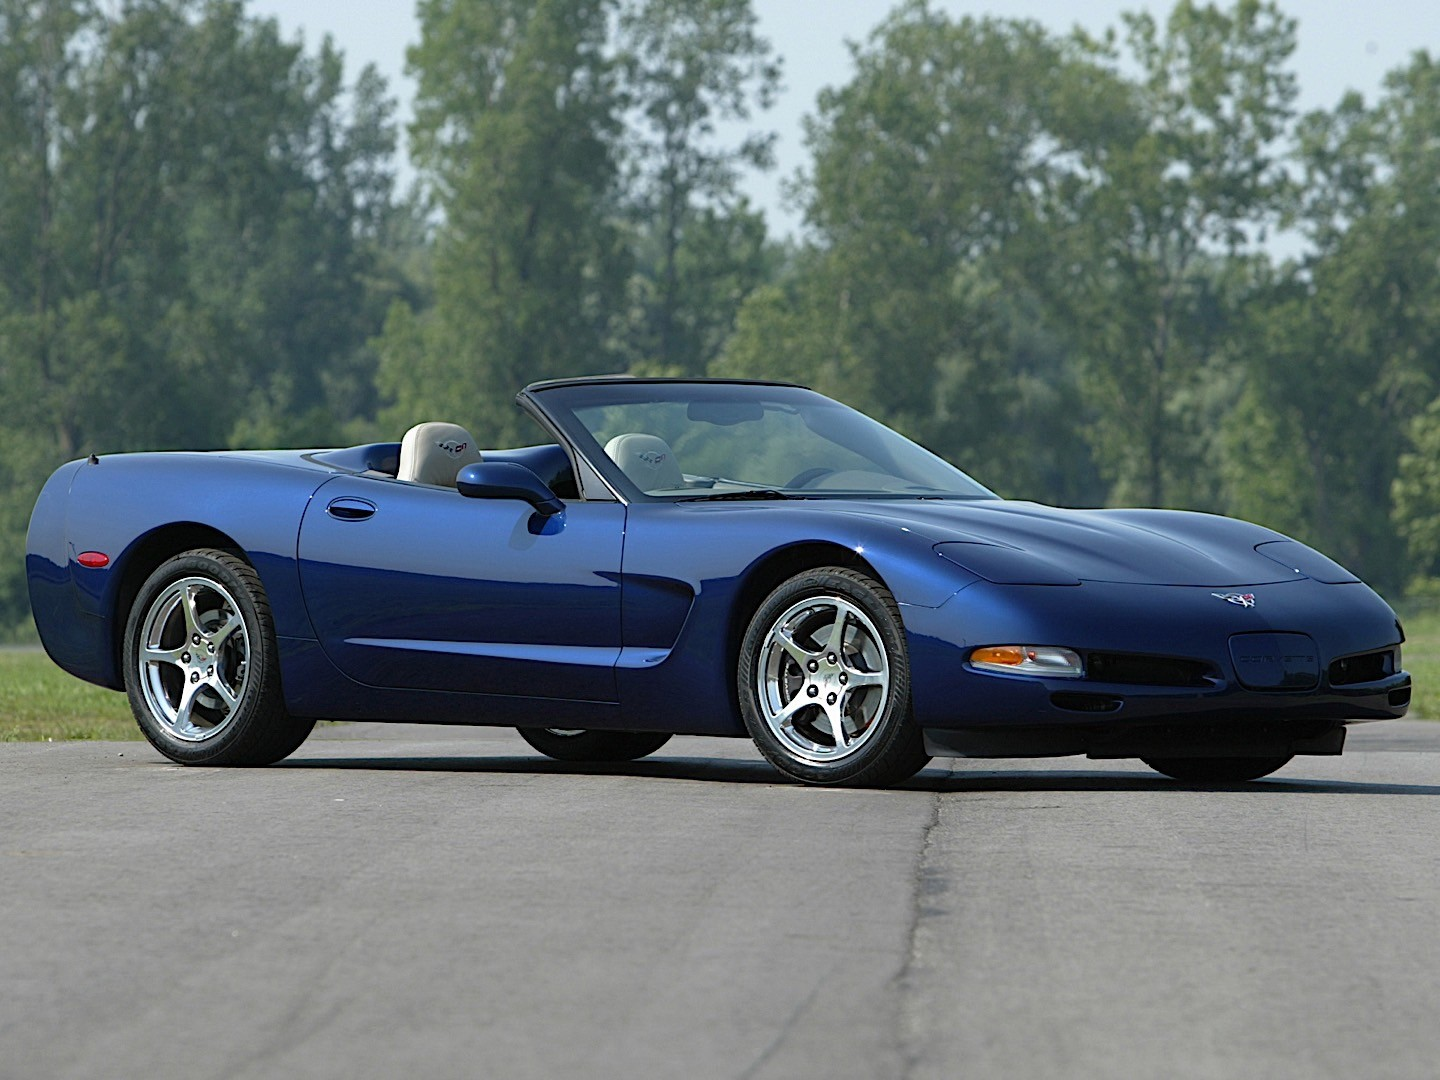 chevrolet corvette c5 convertible specs photos 1998. Black Bedroom Furniture Sets. Home Design Ideas